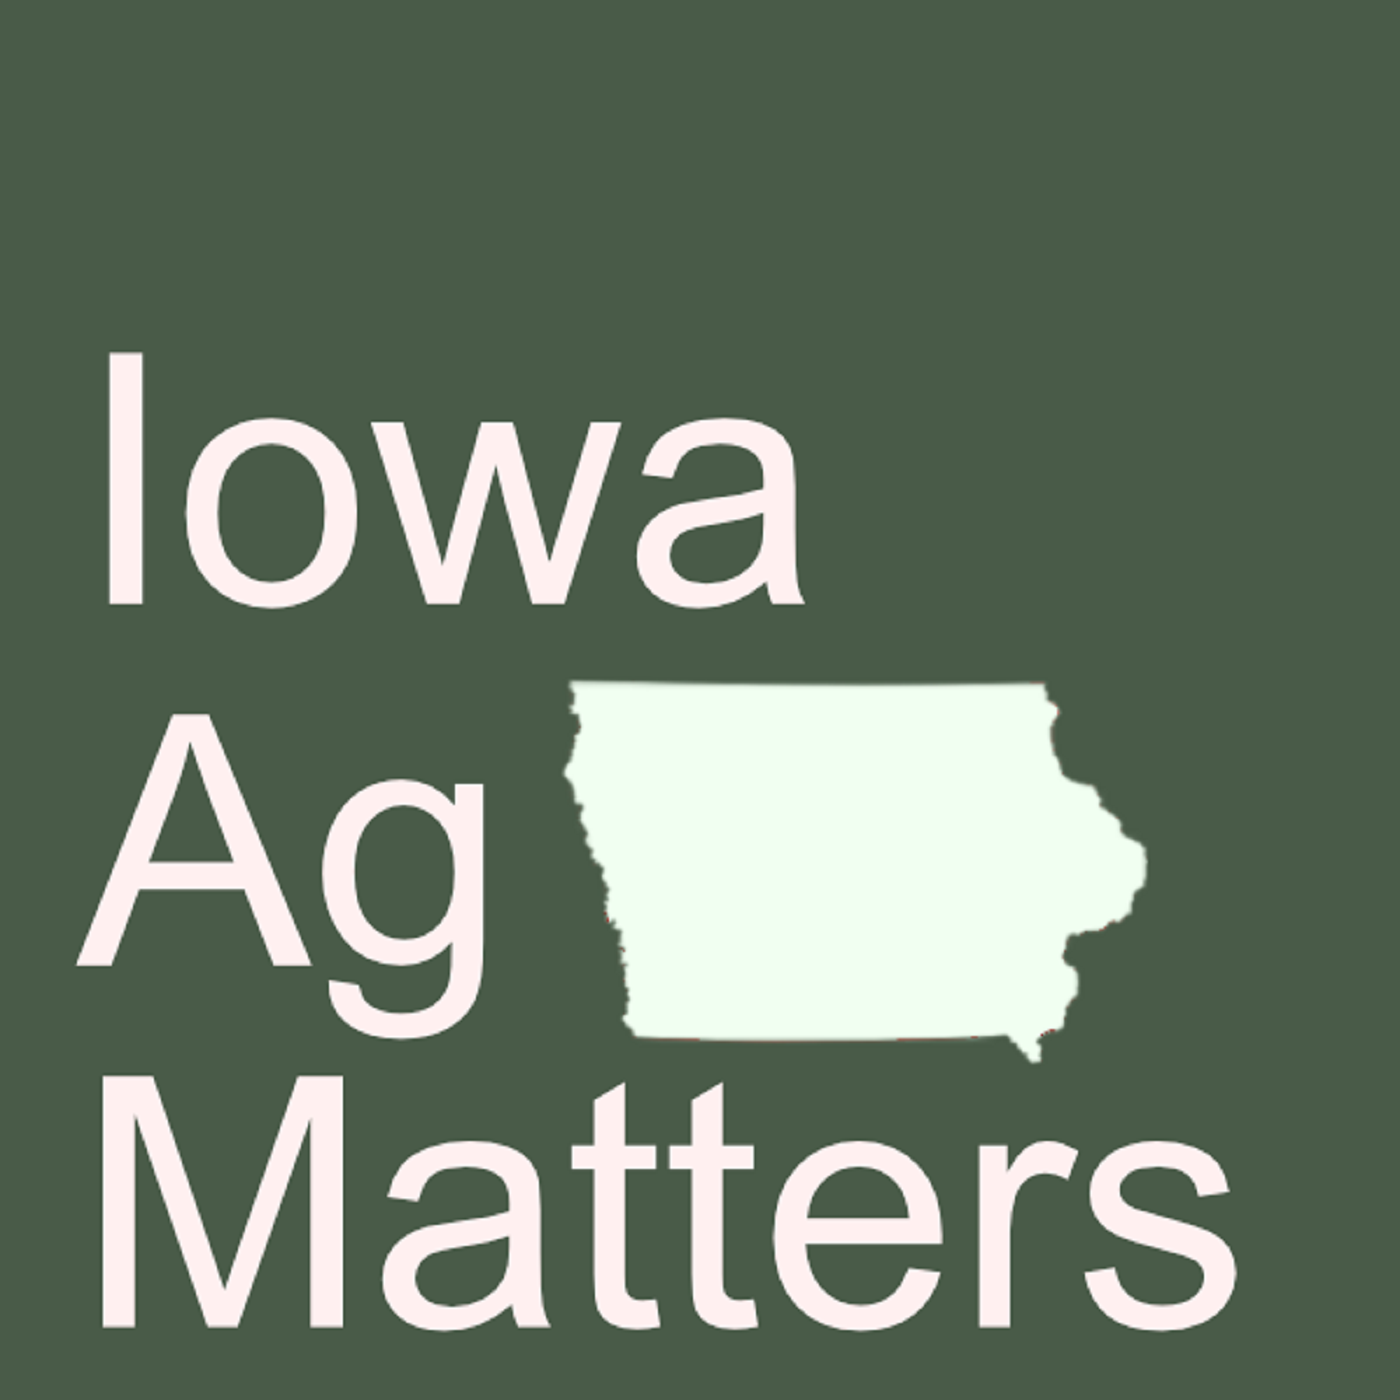 Weekend Ag Matters: February 23, 2019